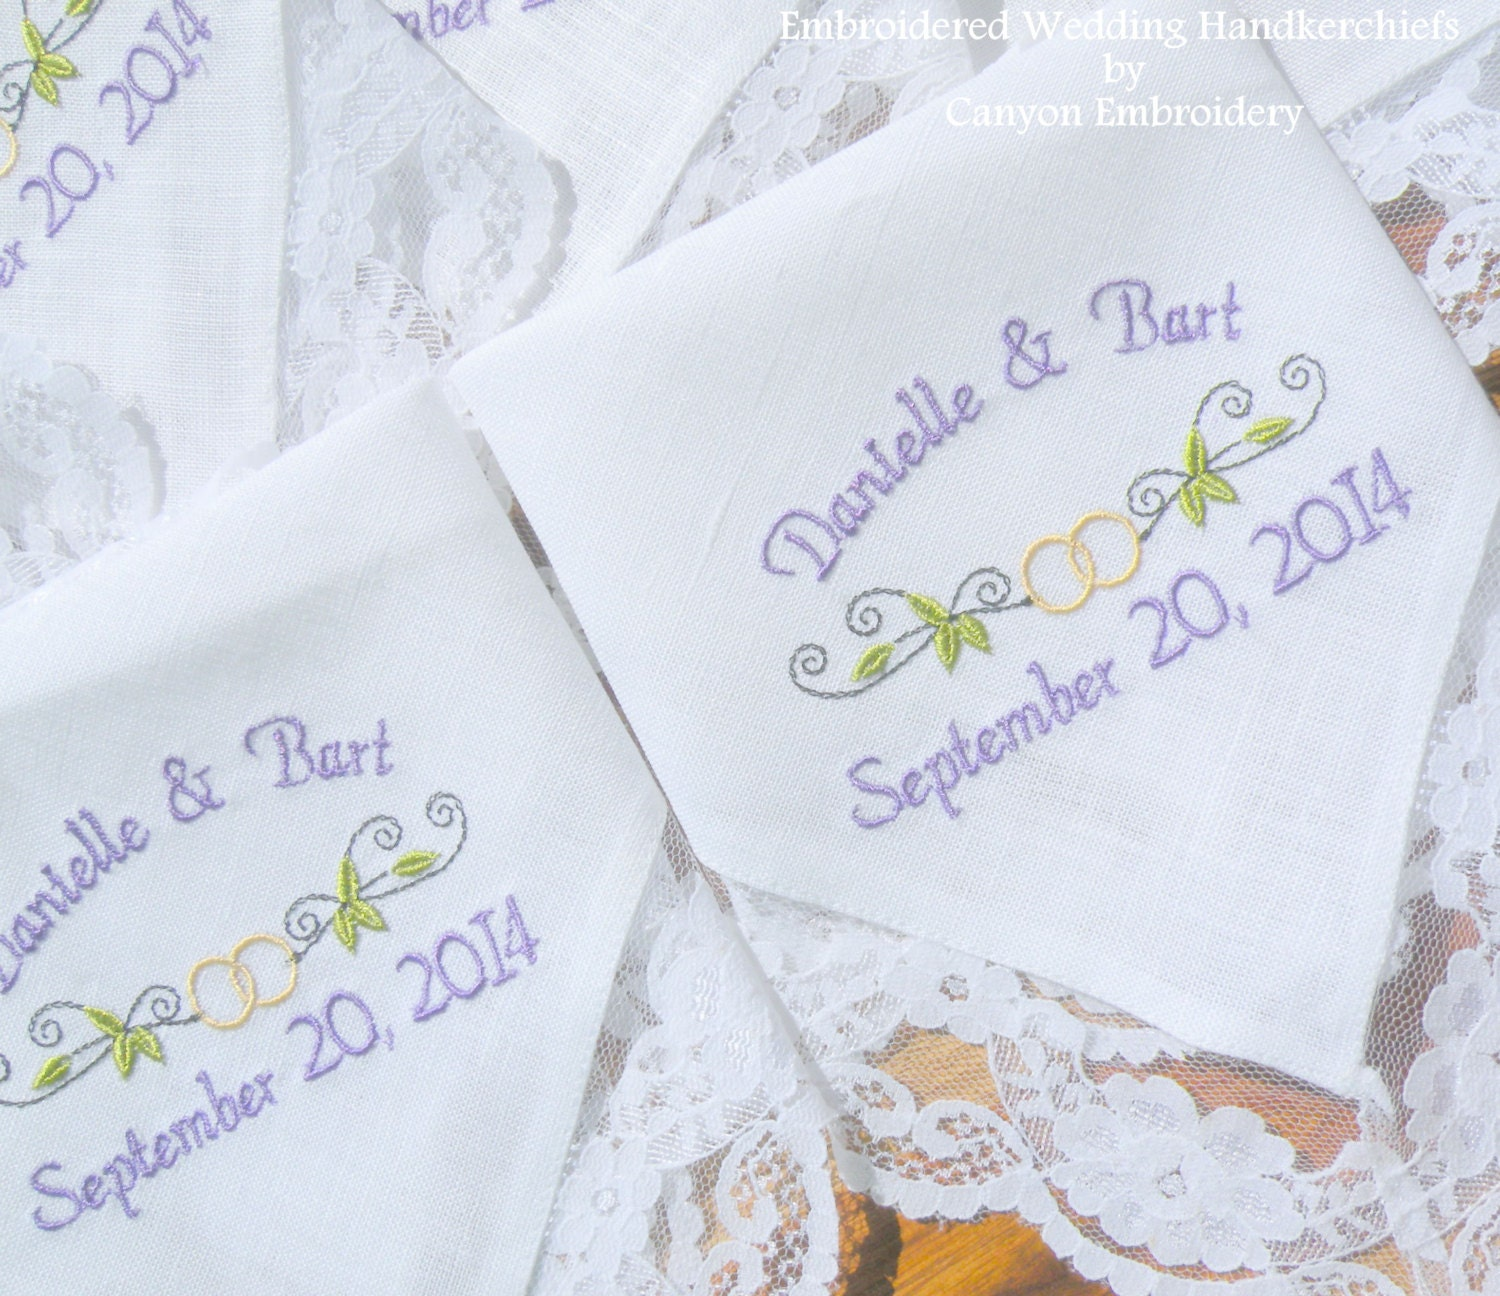 Embroidered wedding handkerchiefs lacy ring